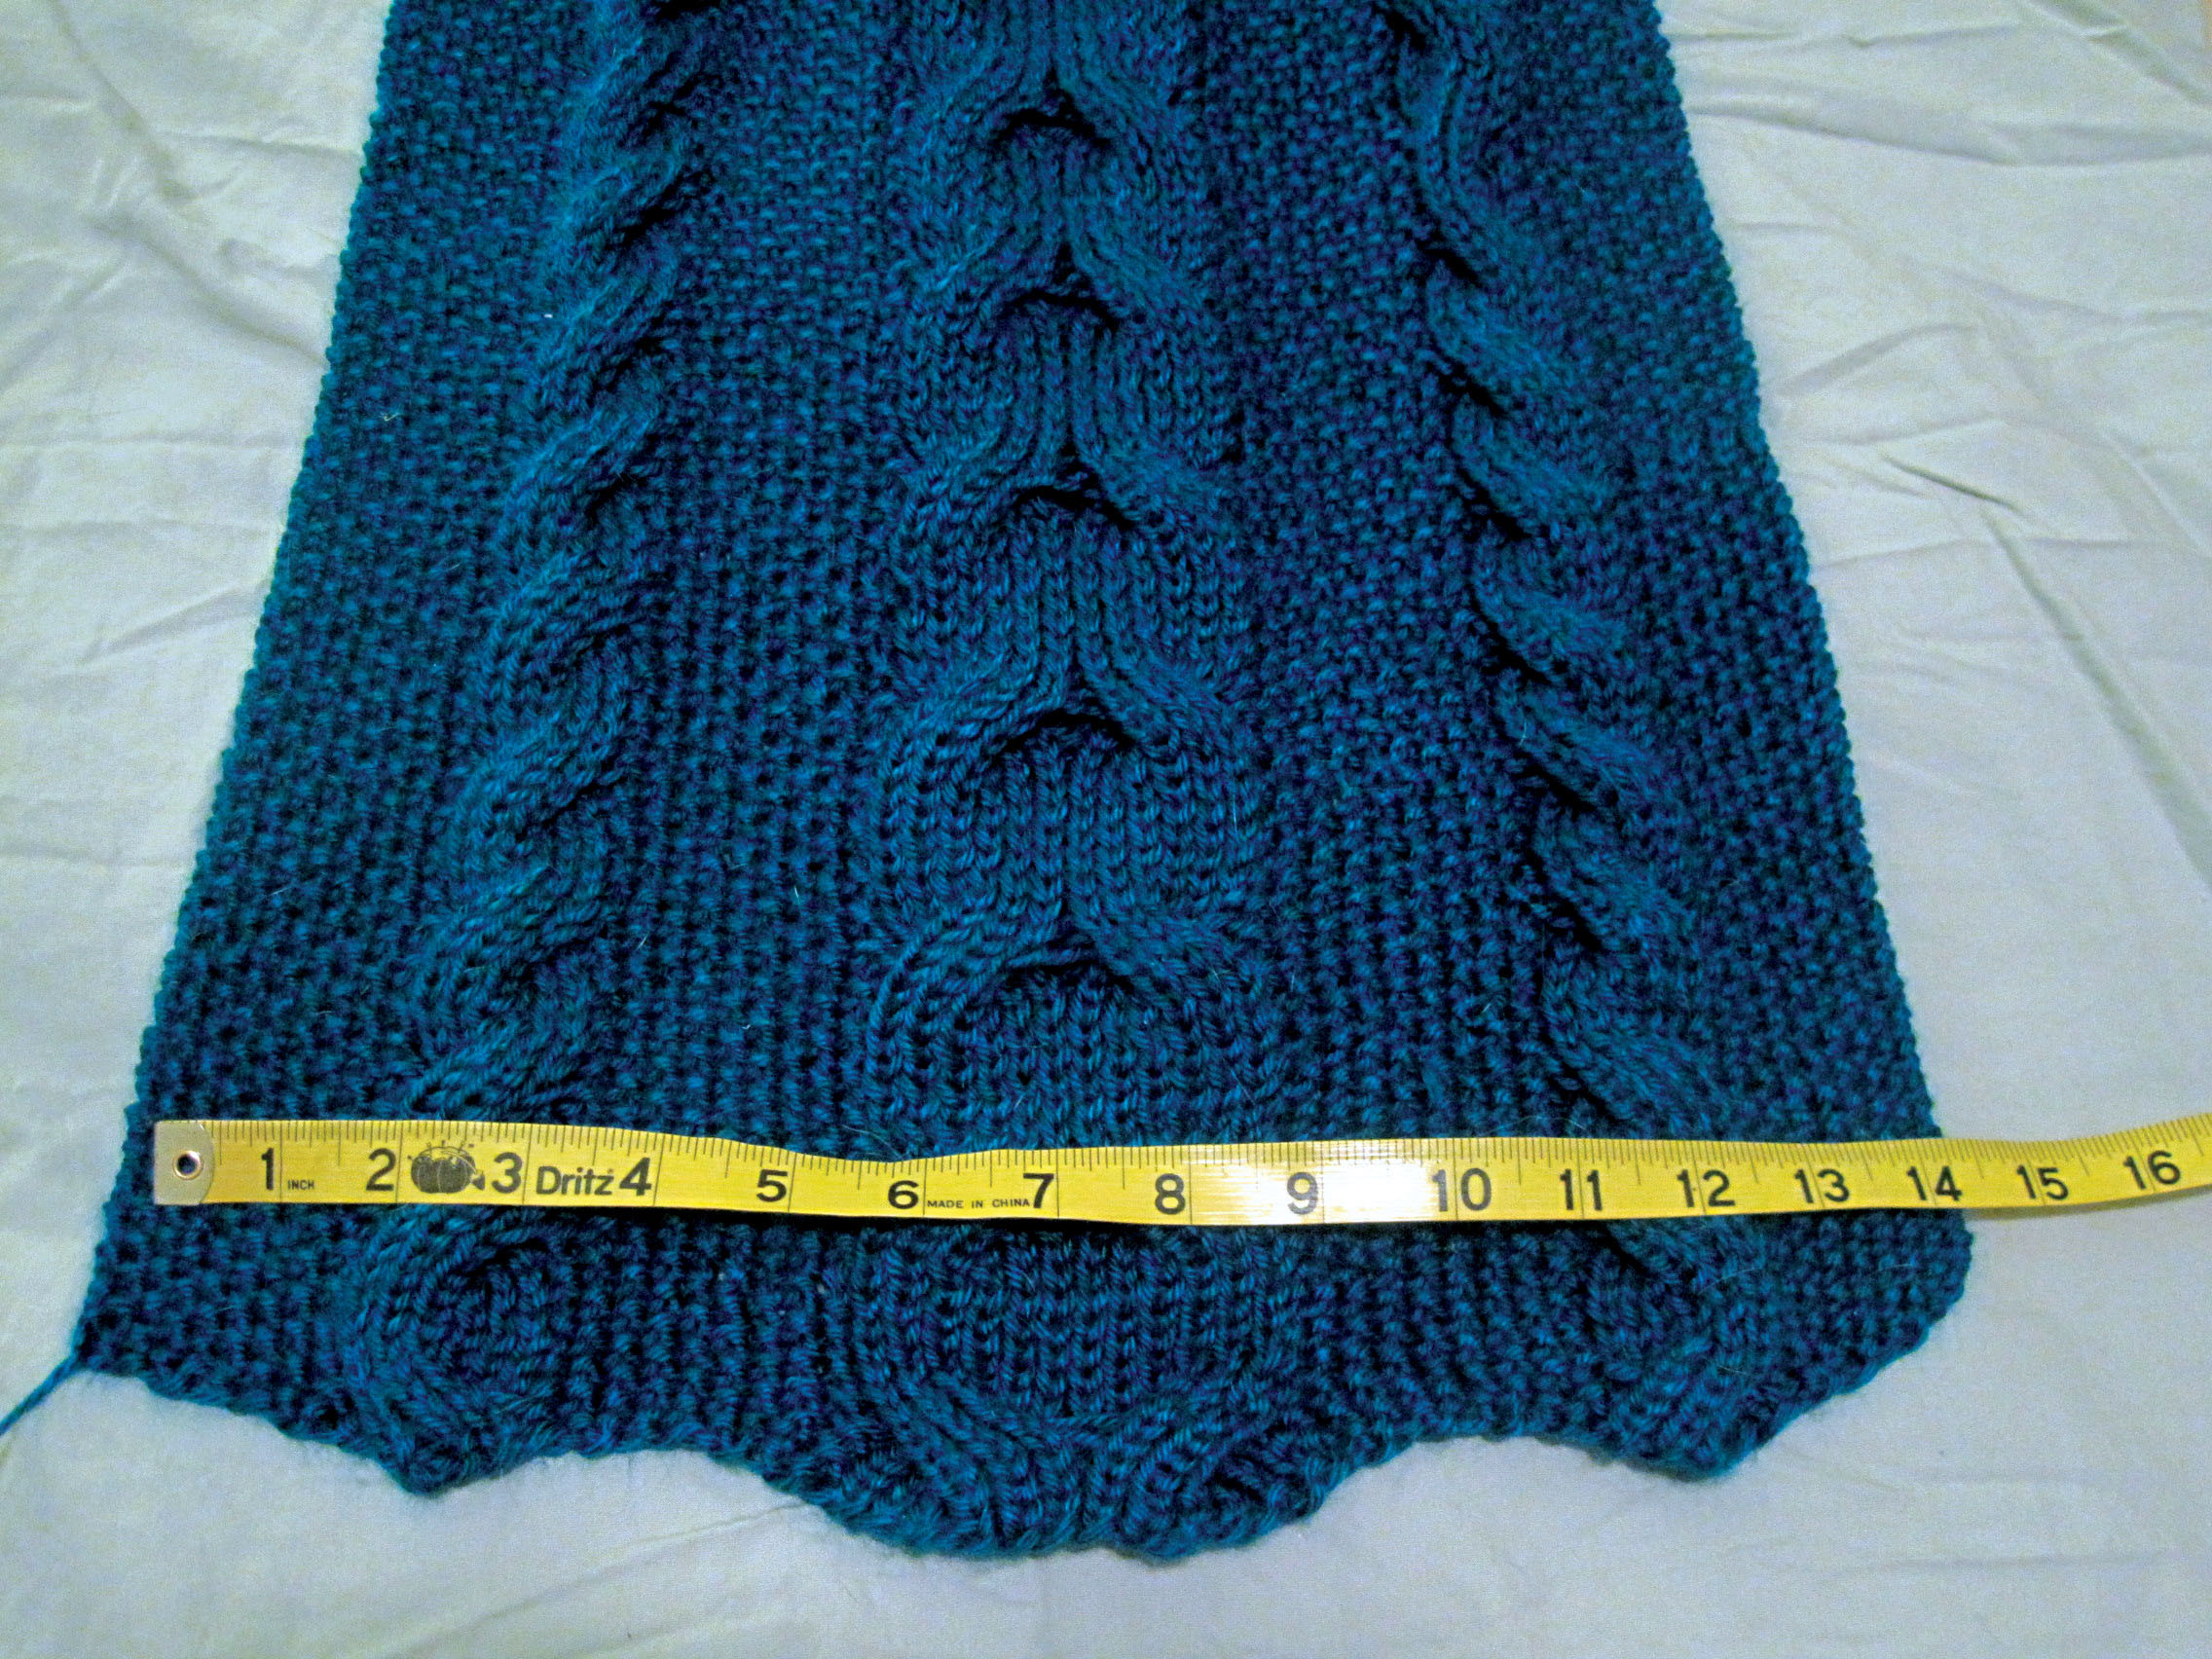 Best Of Reversible Cable Scarf From Vogue Knitting the Cable Knit Scarf Of Delightful 48 Ideas Cable Knit Scarf